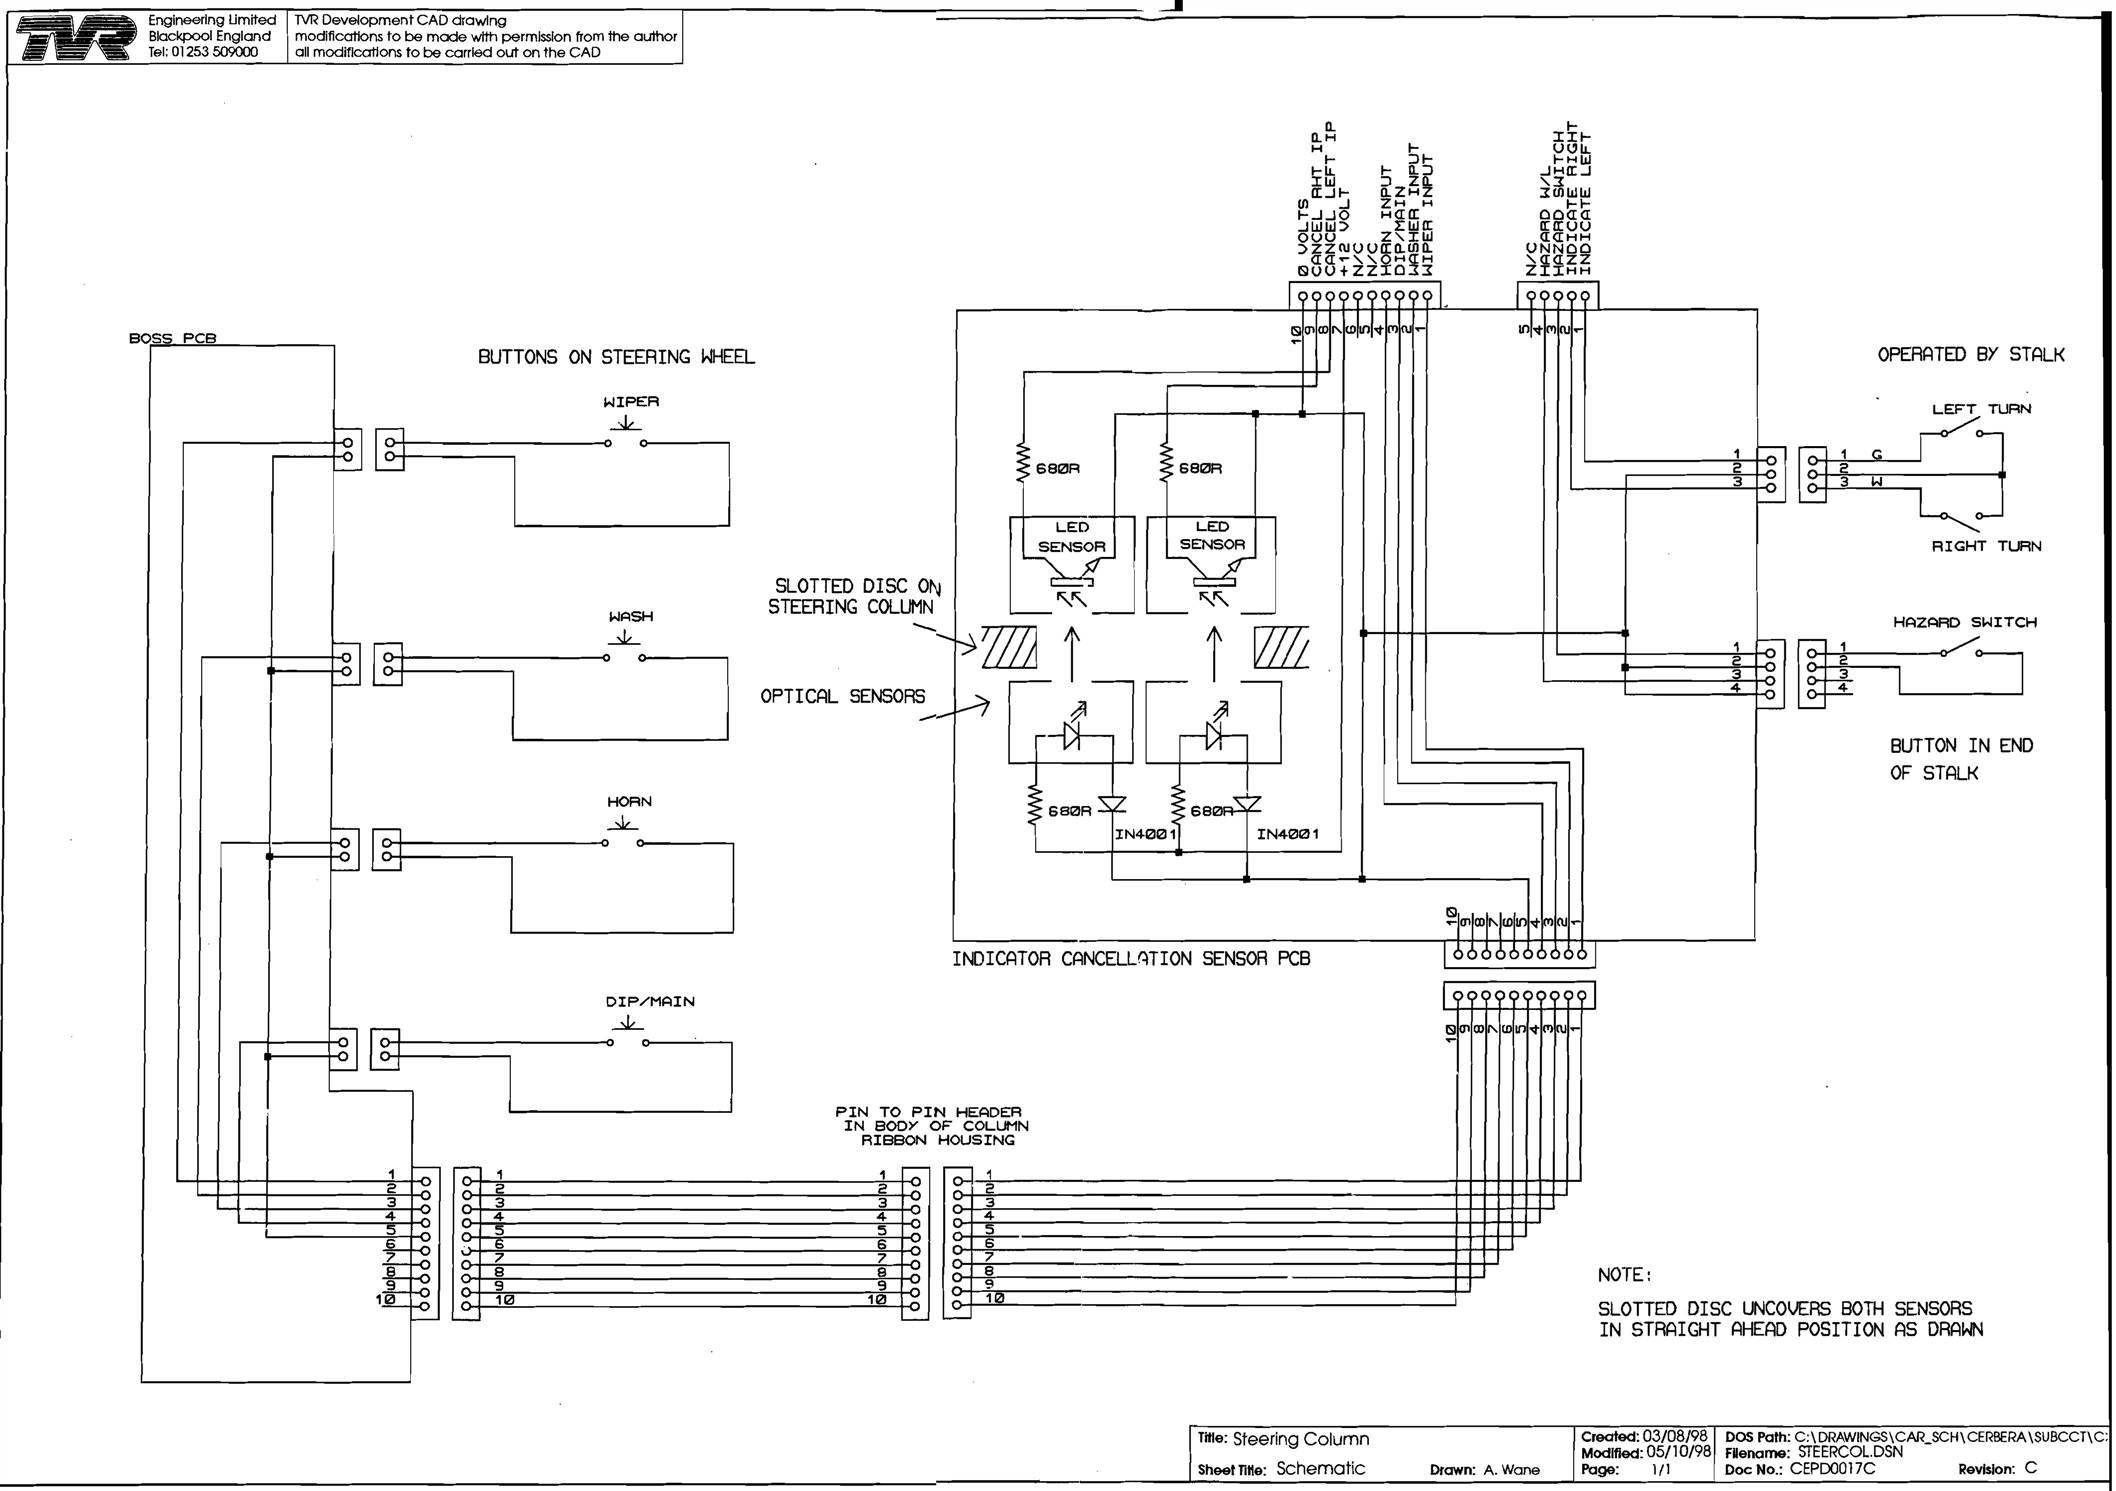 Harley Wiring Harness Diagram Furthermore Automotive Connectors furthermore 1982 Honda Urban Express Wiring Diagram additionally Tg 50 Wiring Diagram besides Puch Ms 50 Wiring Diagrams moreover Viewtopic. on puch wiring diagram